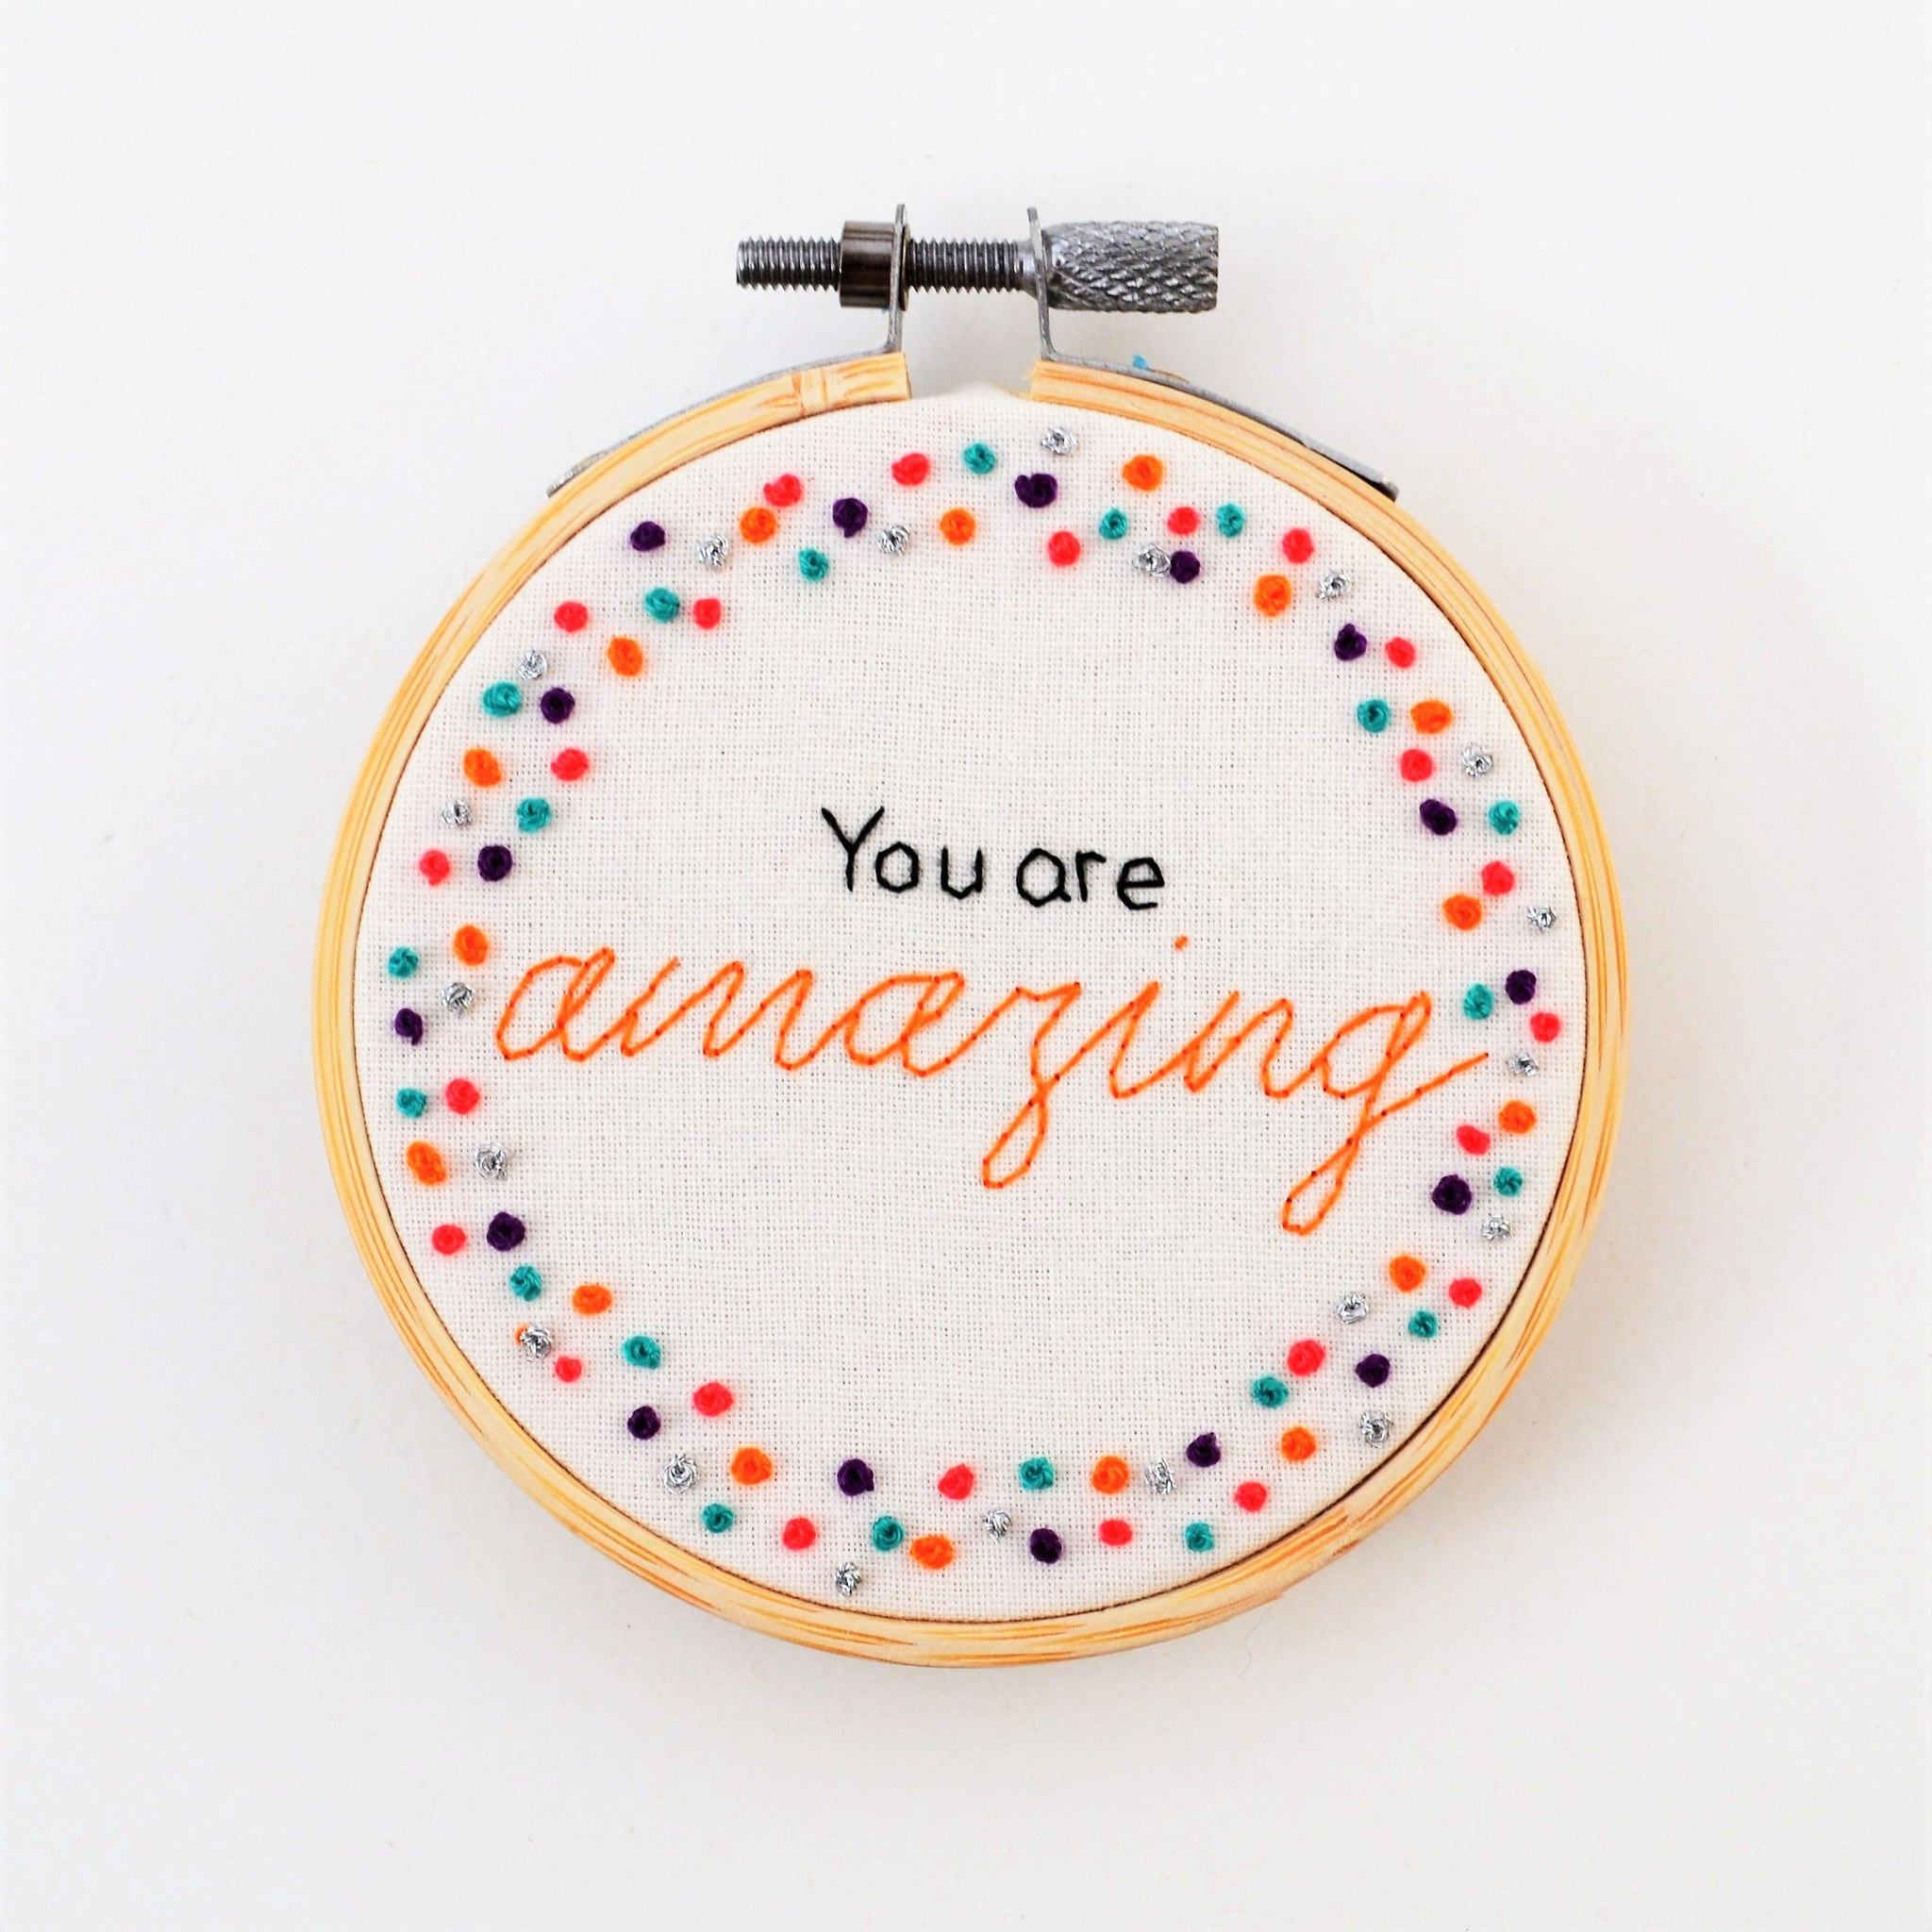 A small miniature hand embroidery hoop reading You are amazing surrounded by colourful and shiny silver french knots on a while background